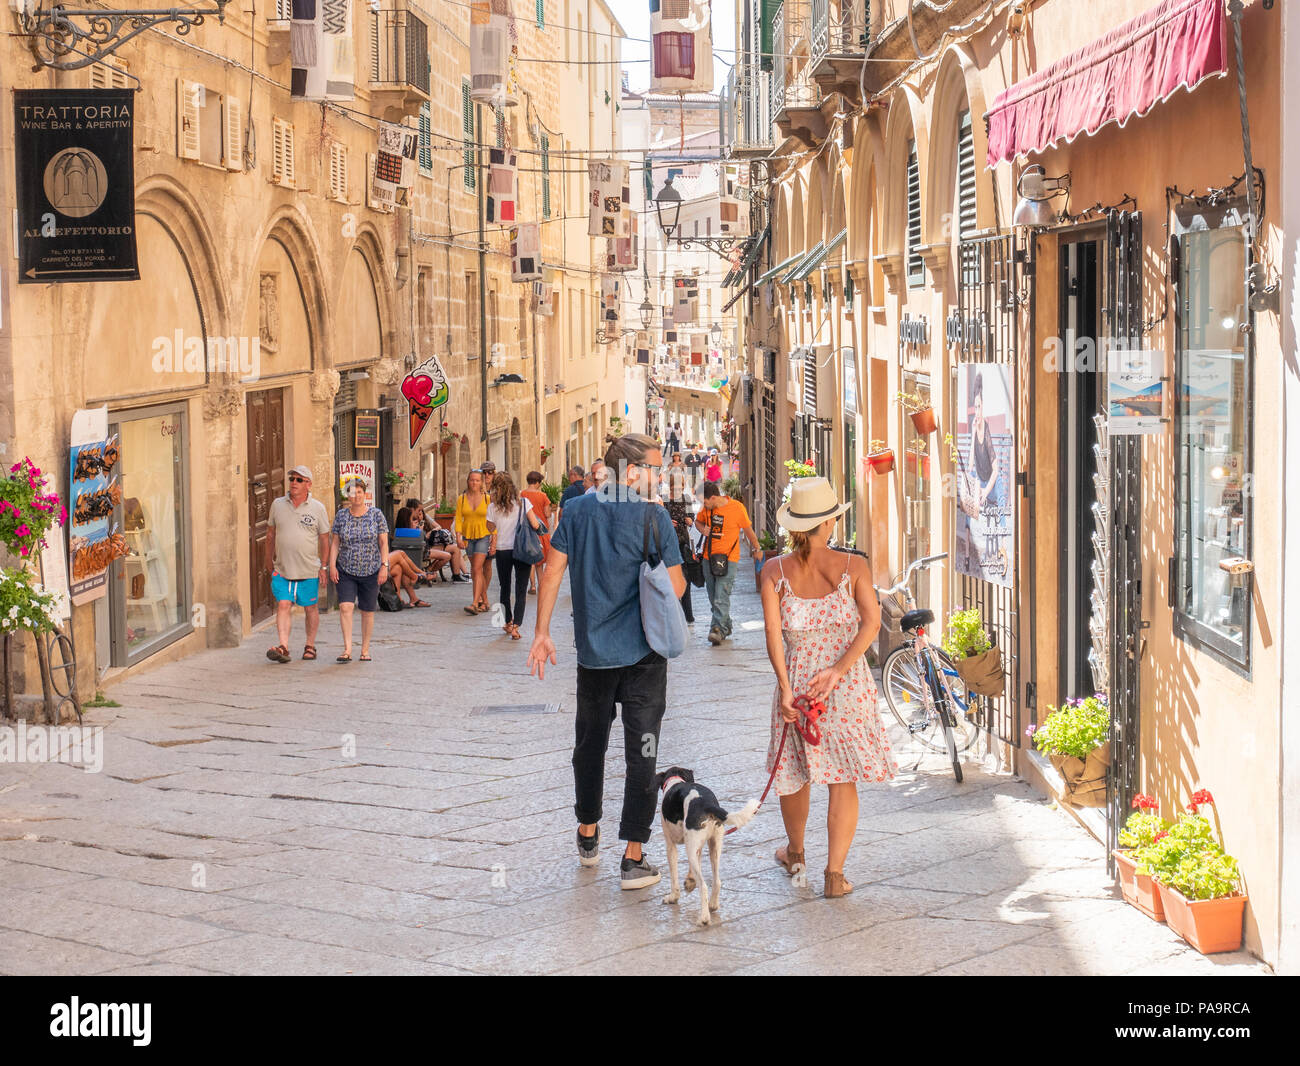 Via Roma in the old town of Alghero, Sardinia, Italy - Stock Image